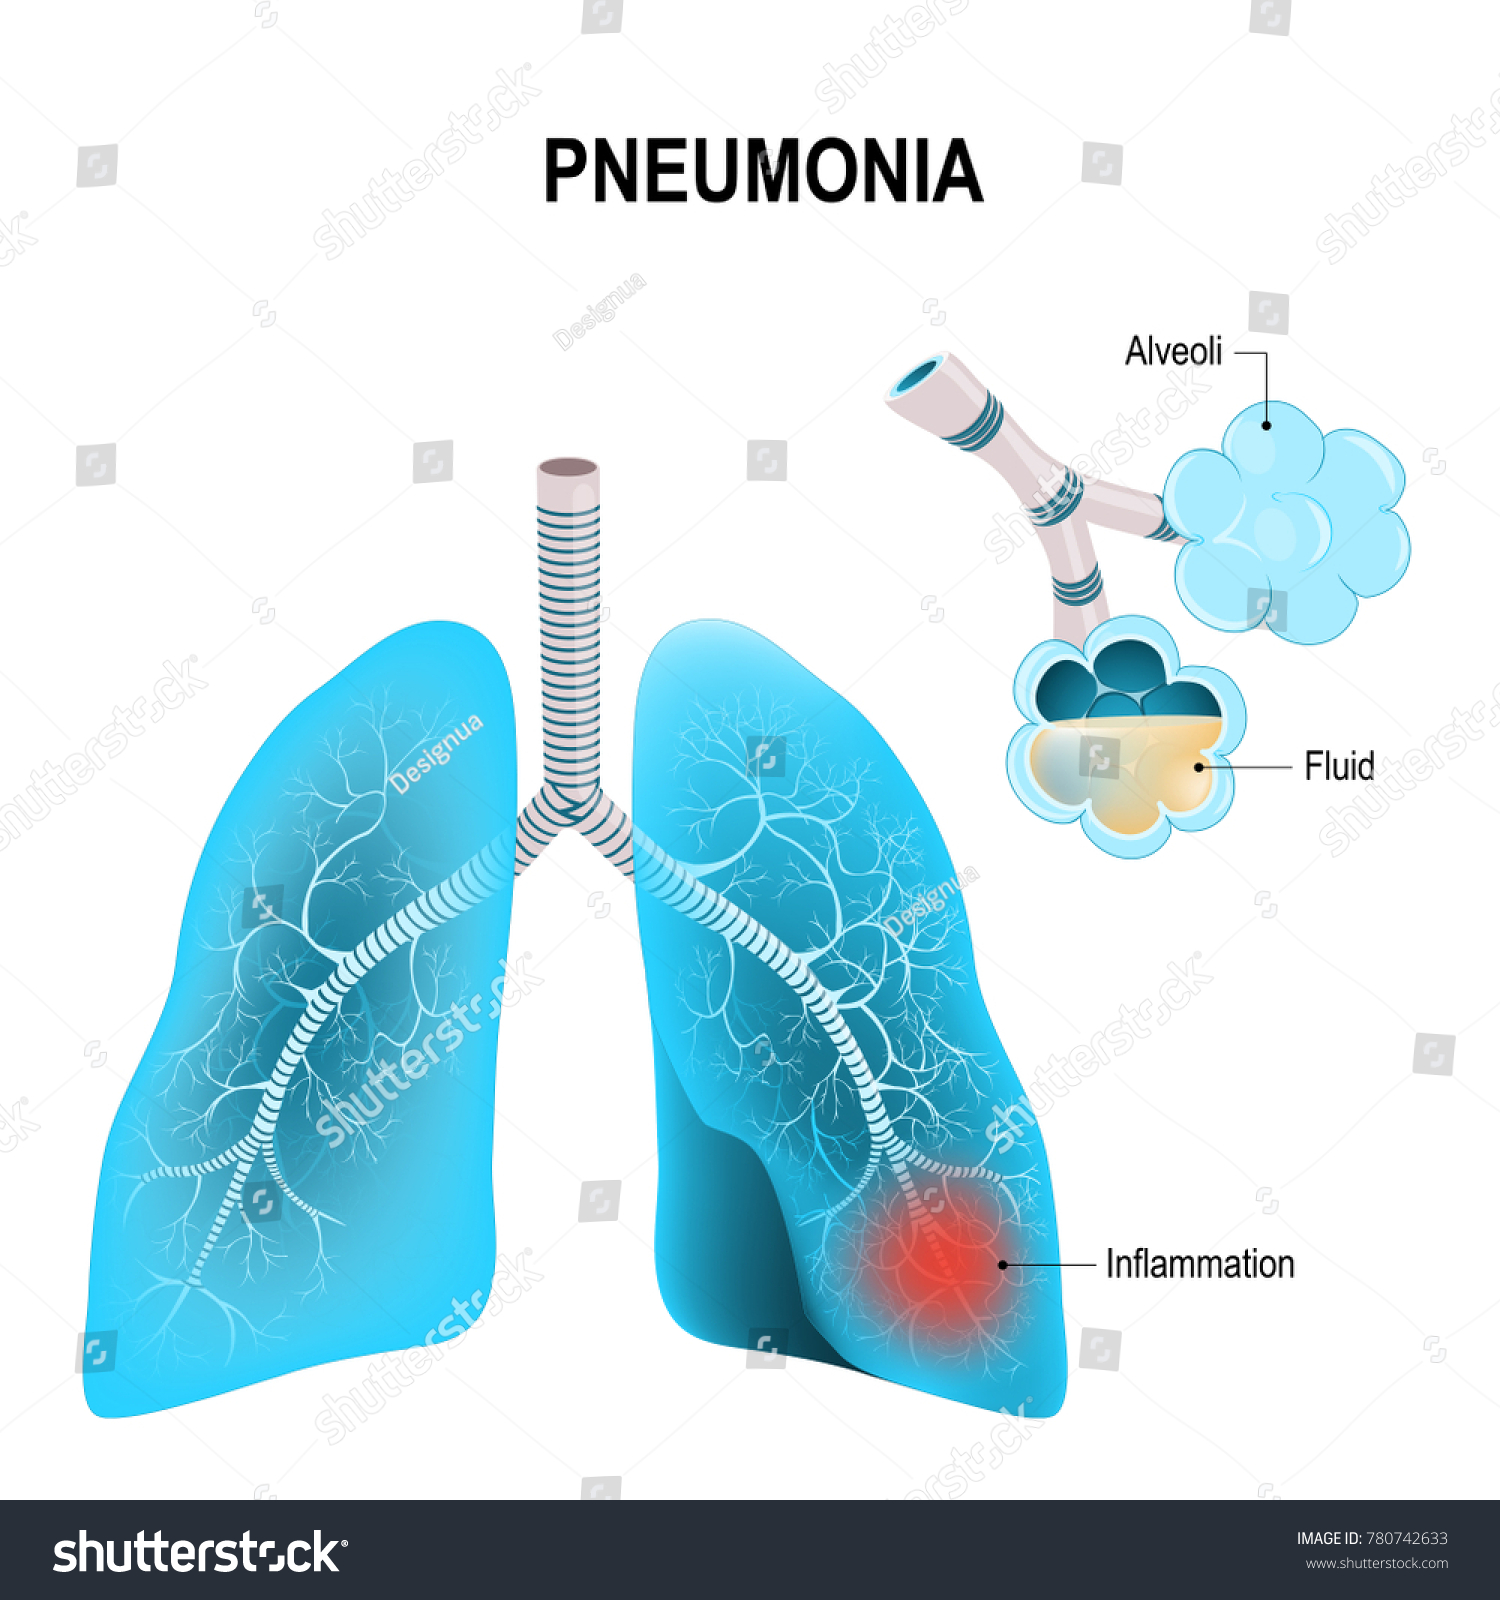 hight resolution of pneumonia normal and inflammatory condition of the lung and inflamed alveoli with fluid